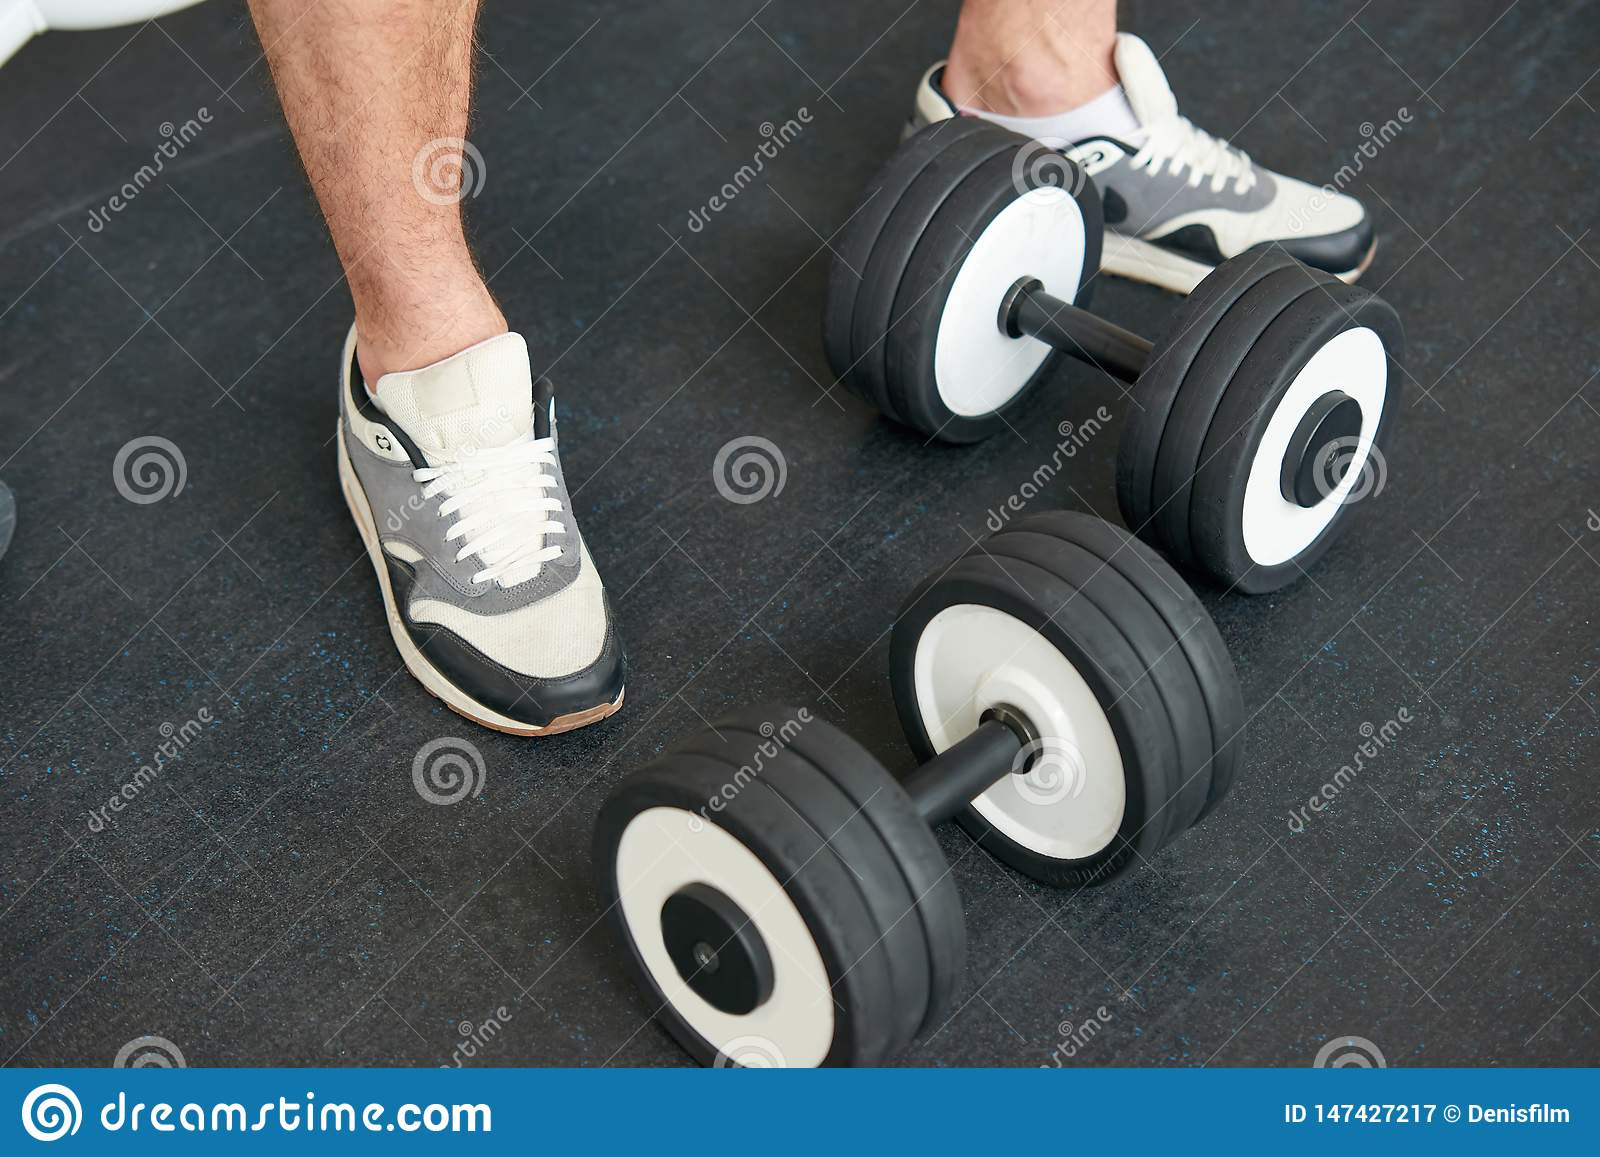 Sportsman in sneakers standing with dumbbells on the floor.